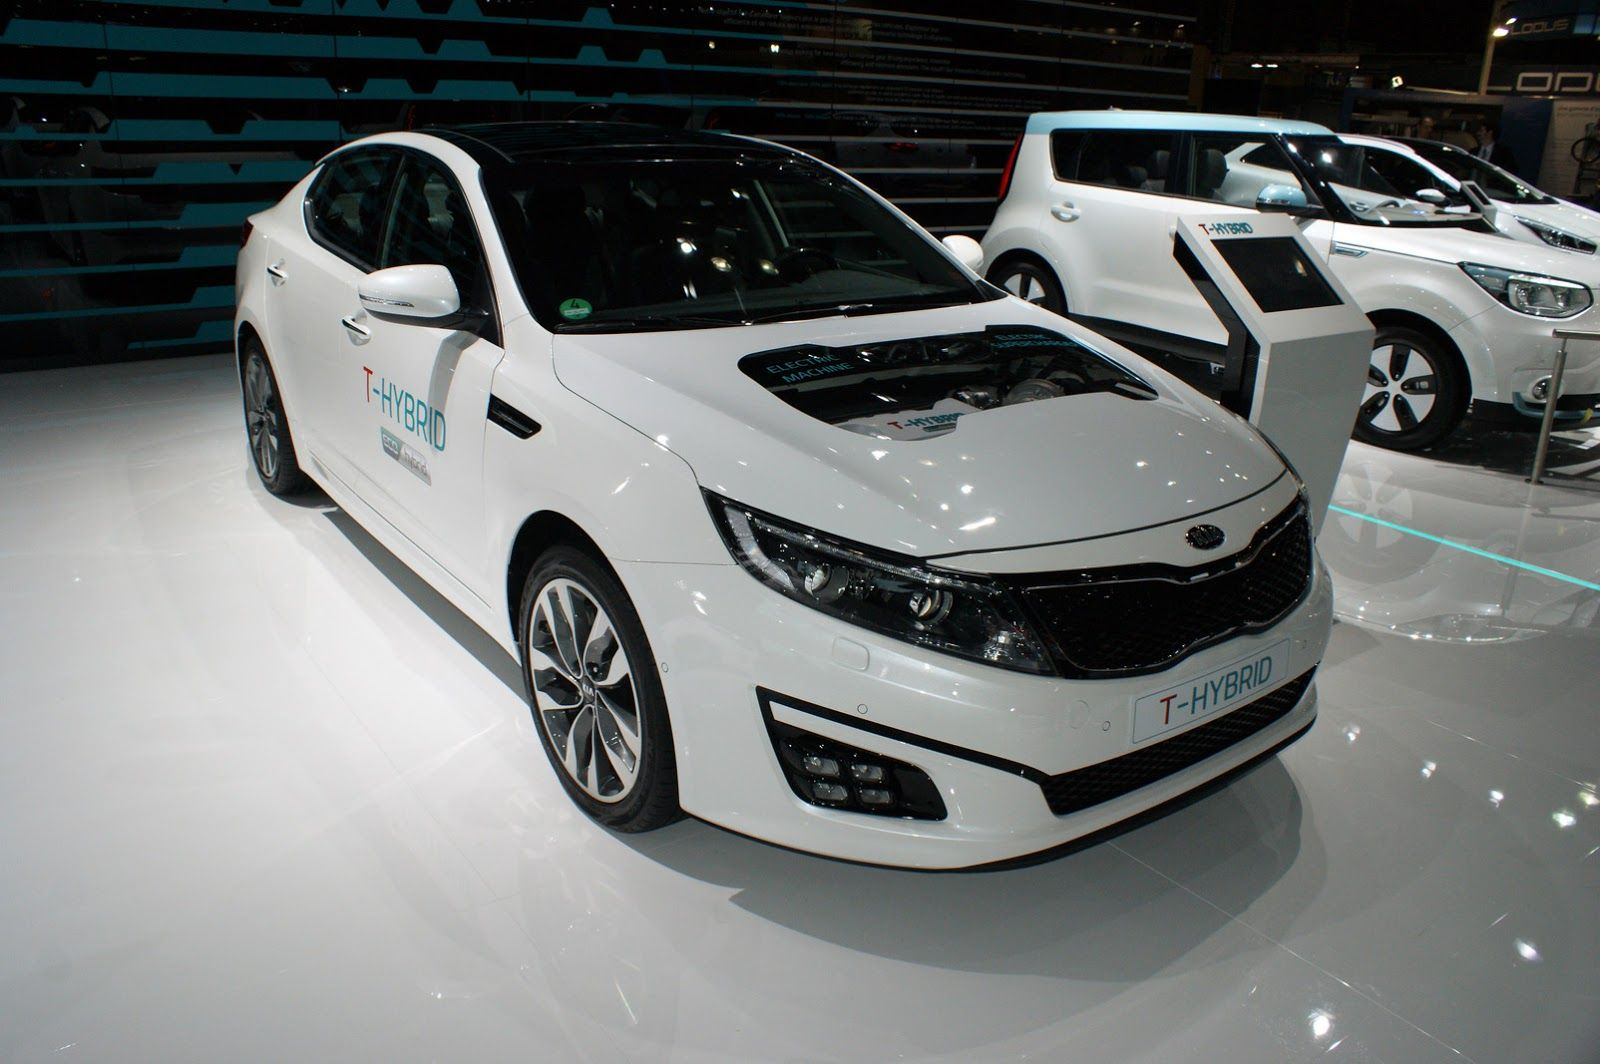 Korea s kia is showcasing a new diesel electric powertrain on the optima t hybrid concept at the 2014 paris auto show